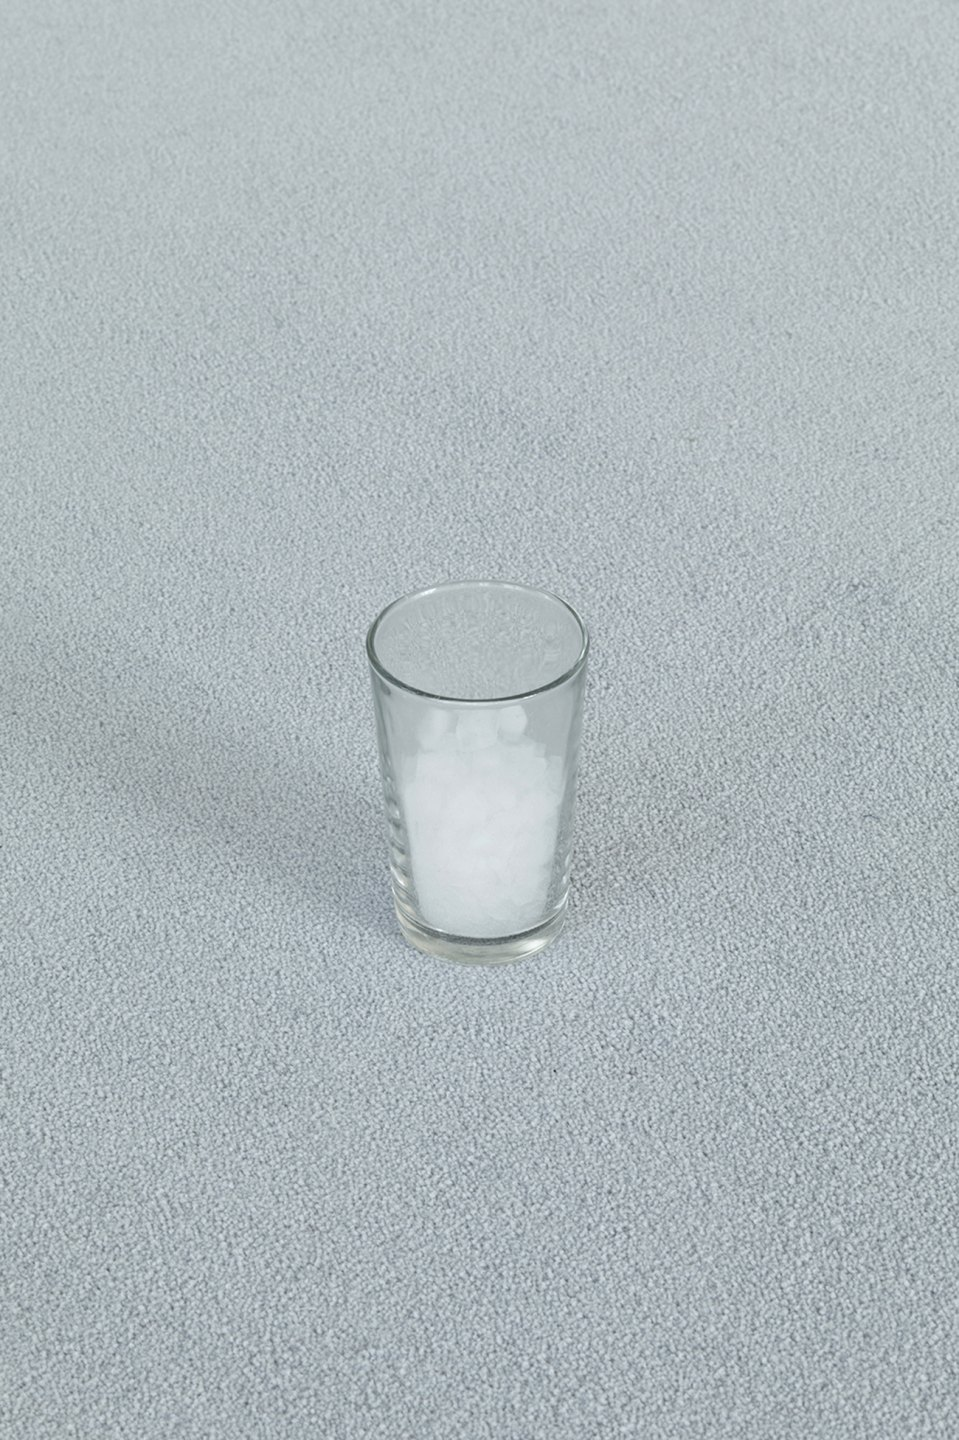 Nina Canell,<em>&nbsp;Interiors (Condensed)</em>, 2012,&nbsp;congealed air, drinking glass, fitted carpet<br> - Mendes Wood DM